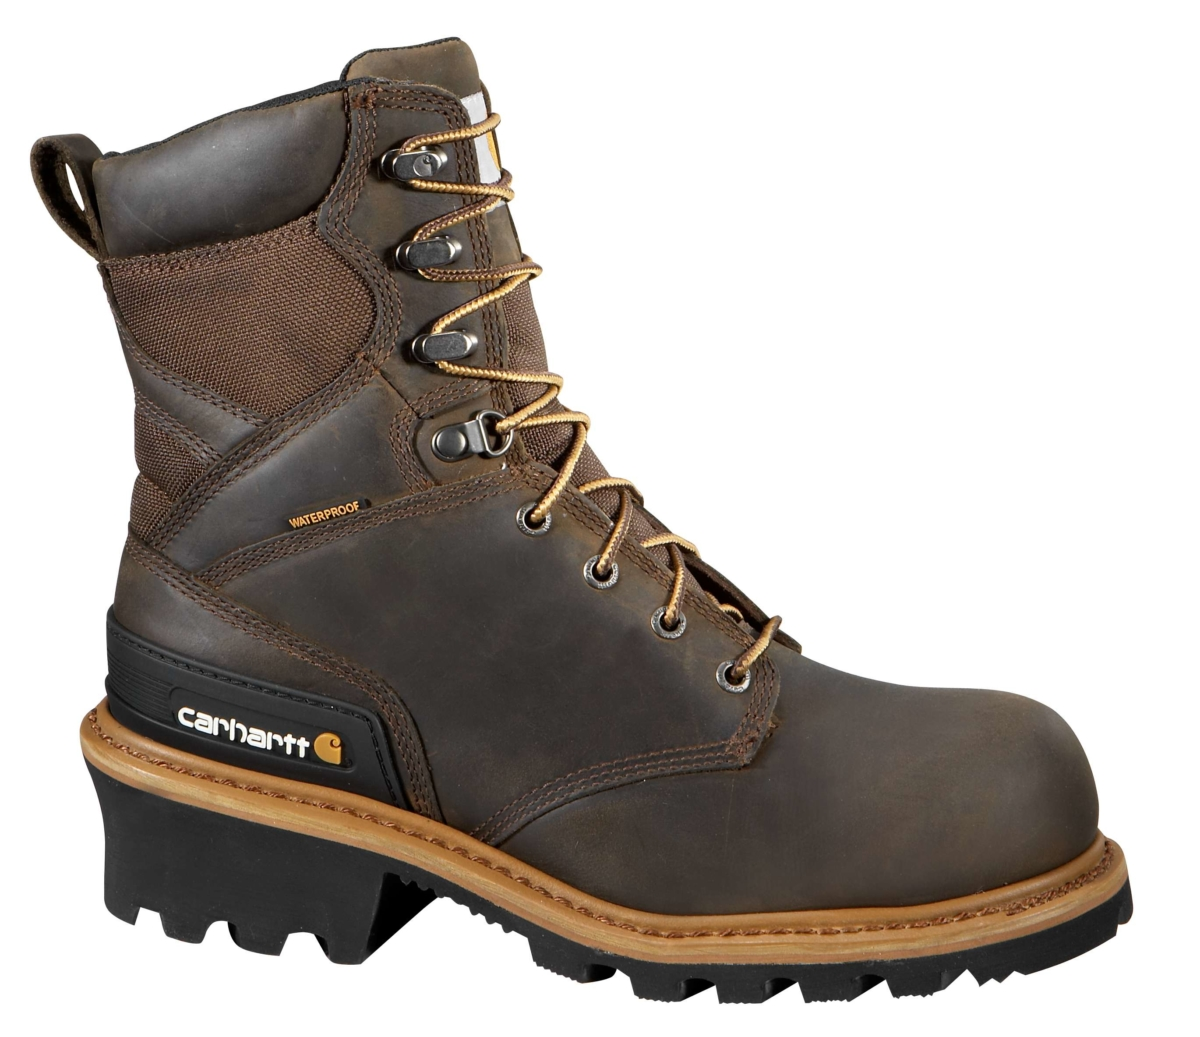 Carhartt 8-Inch Non-Safety Toe Climbing Boot Crazy Horse Brown Oil Tanned USA - GOOFASH - Mens BOOTS